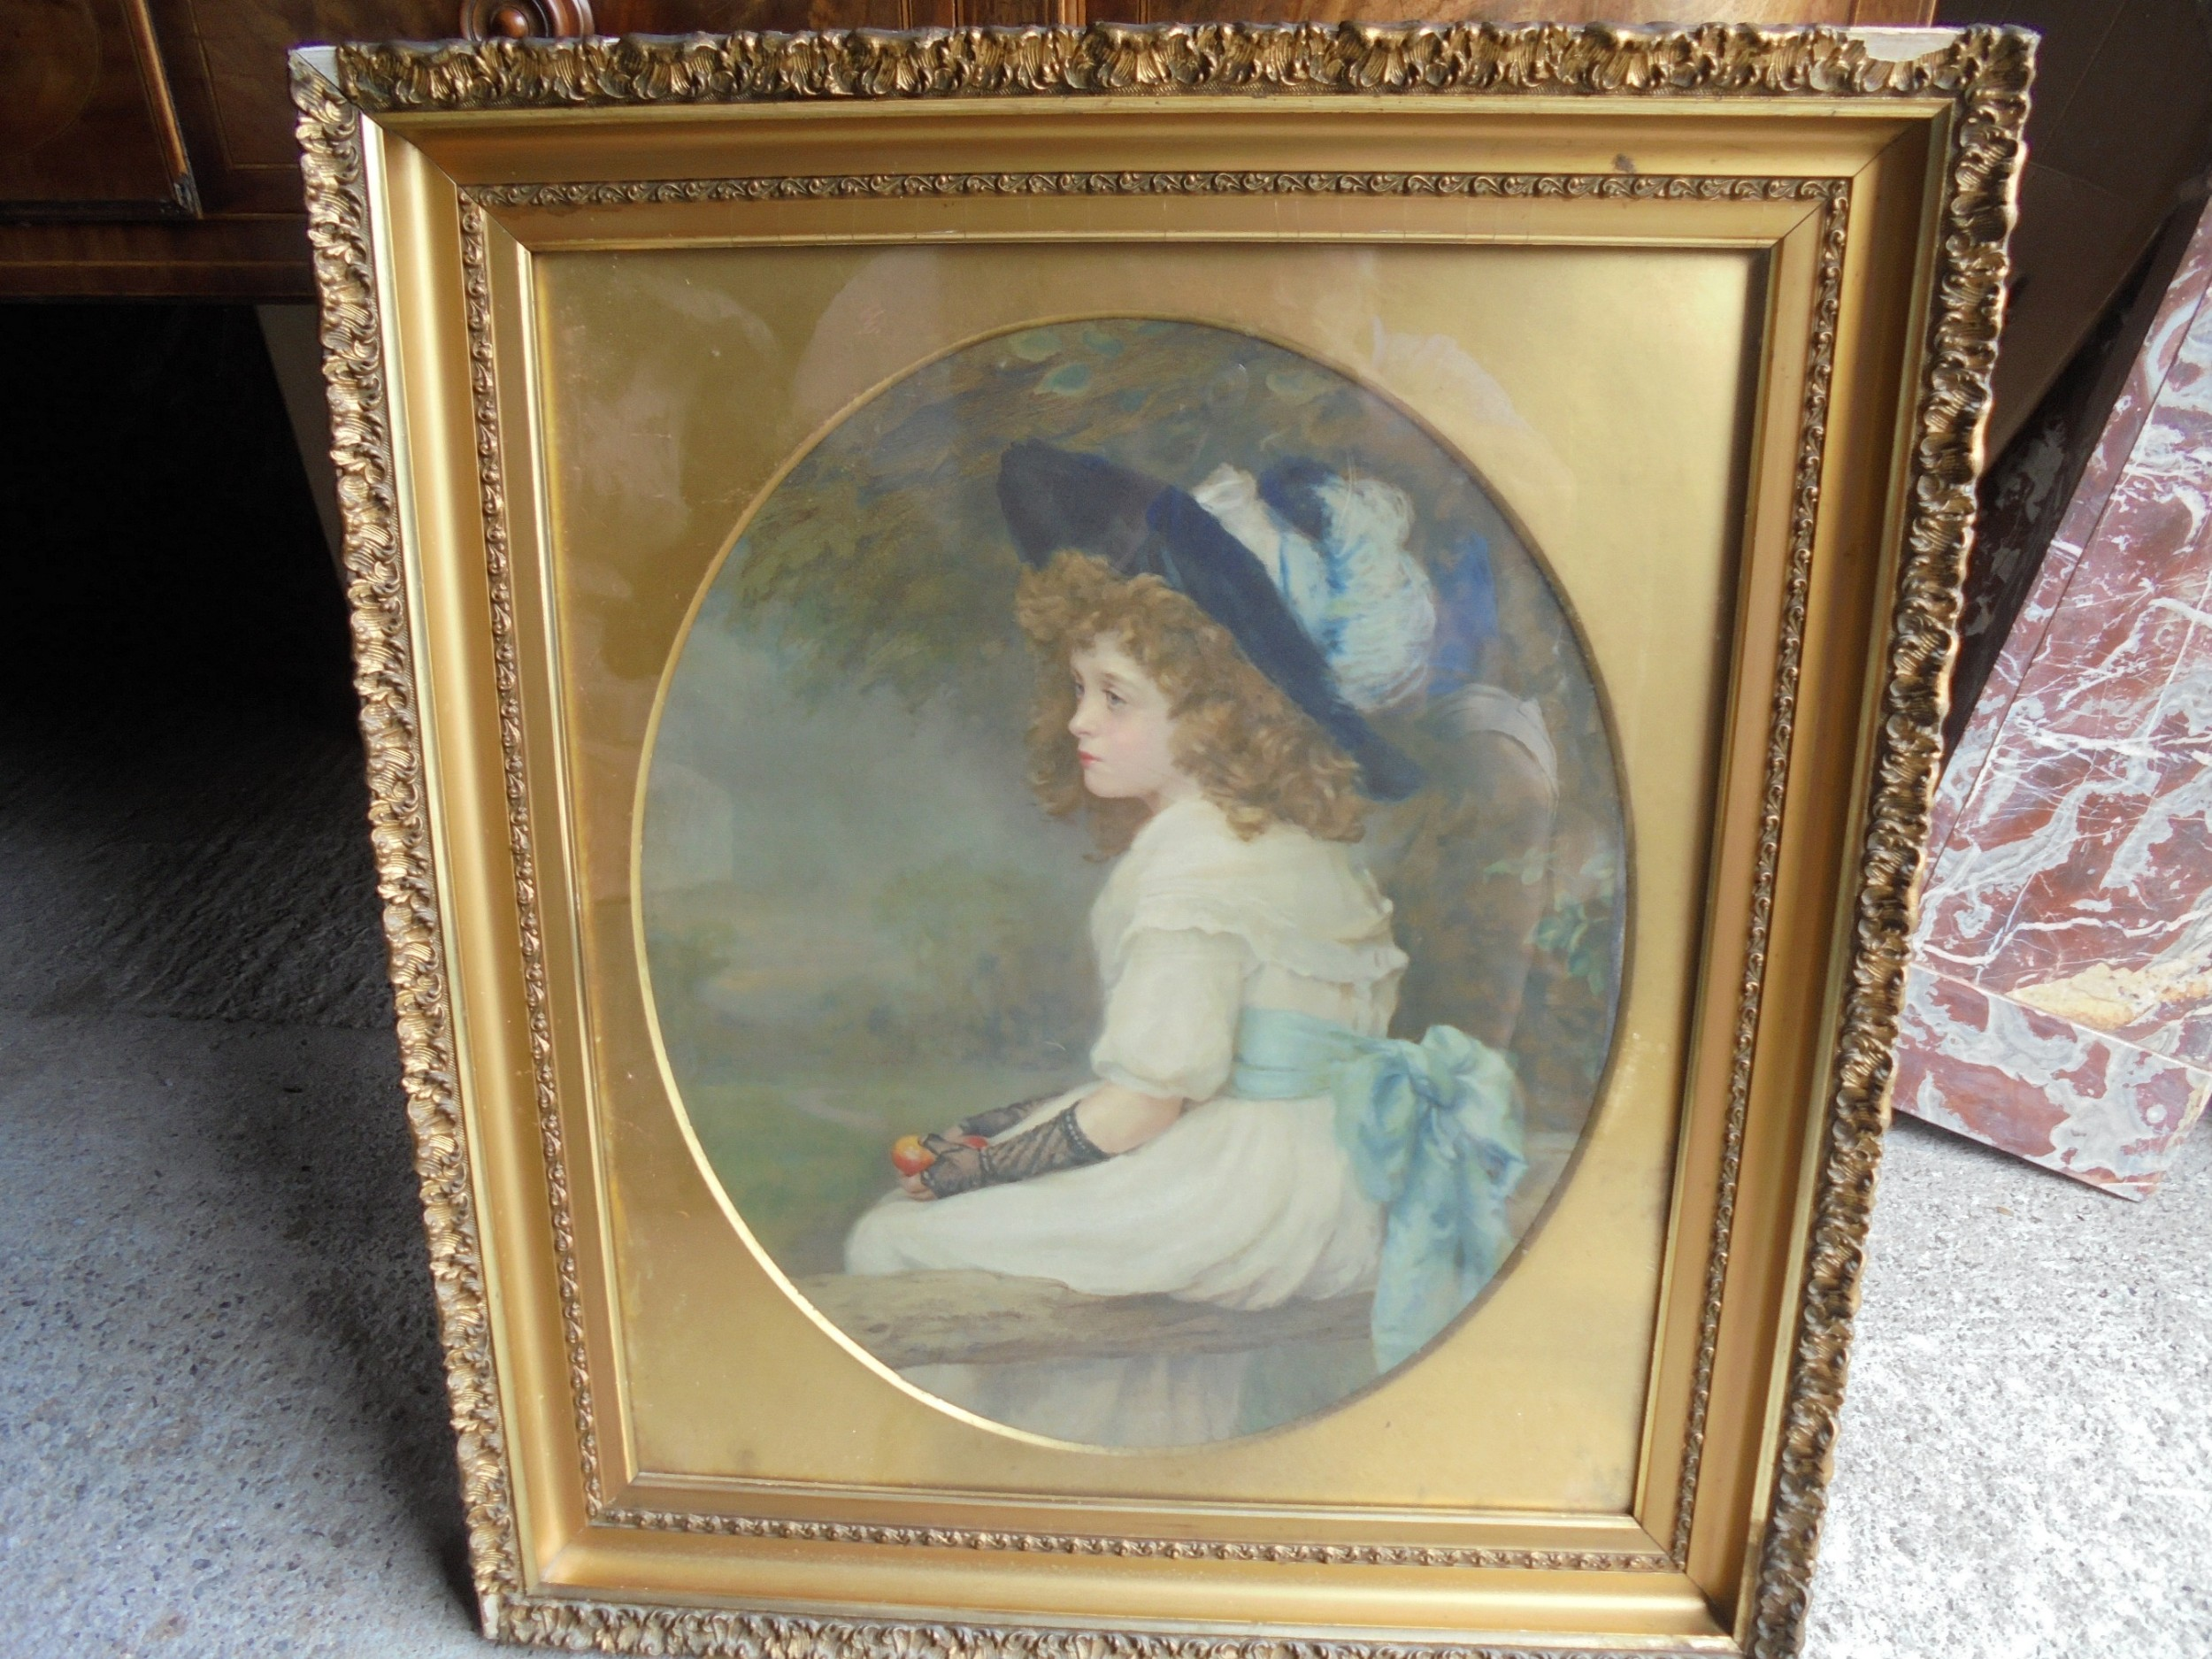 19th century pastel portrait gilded frame